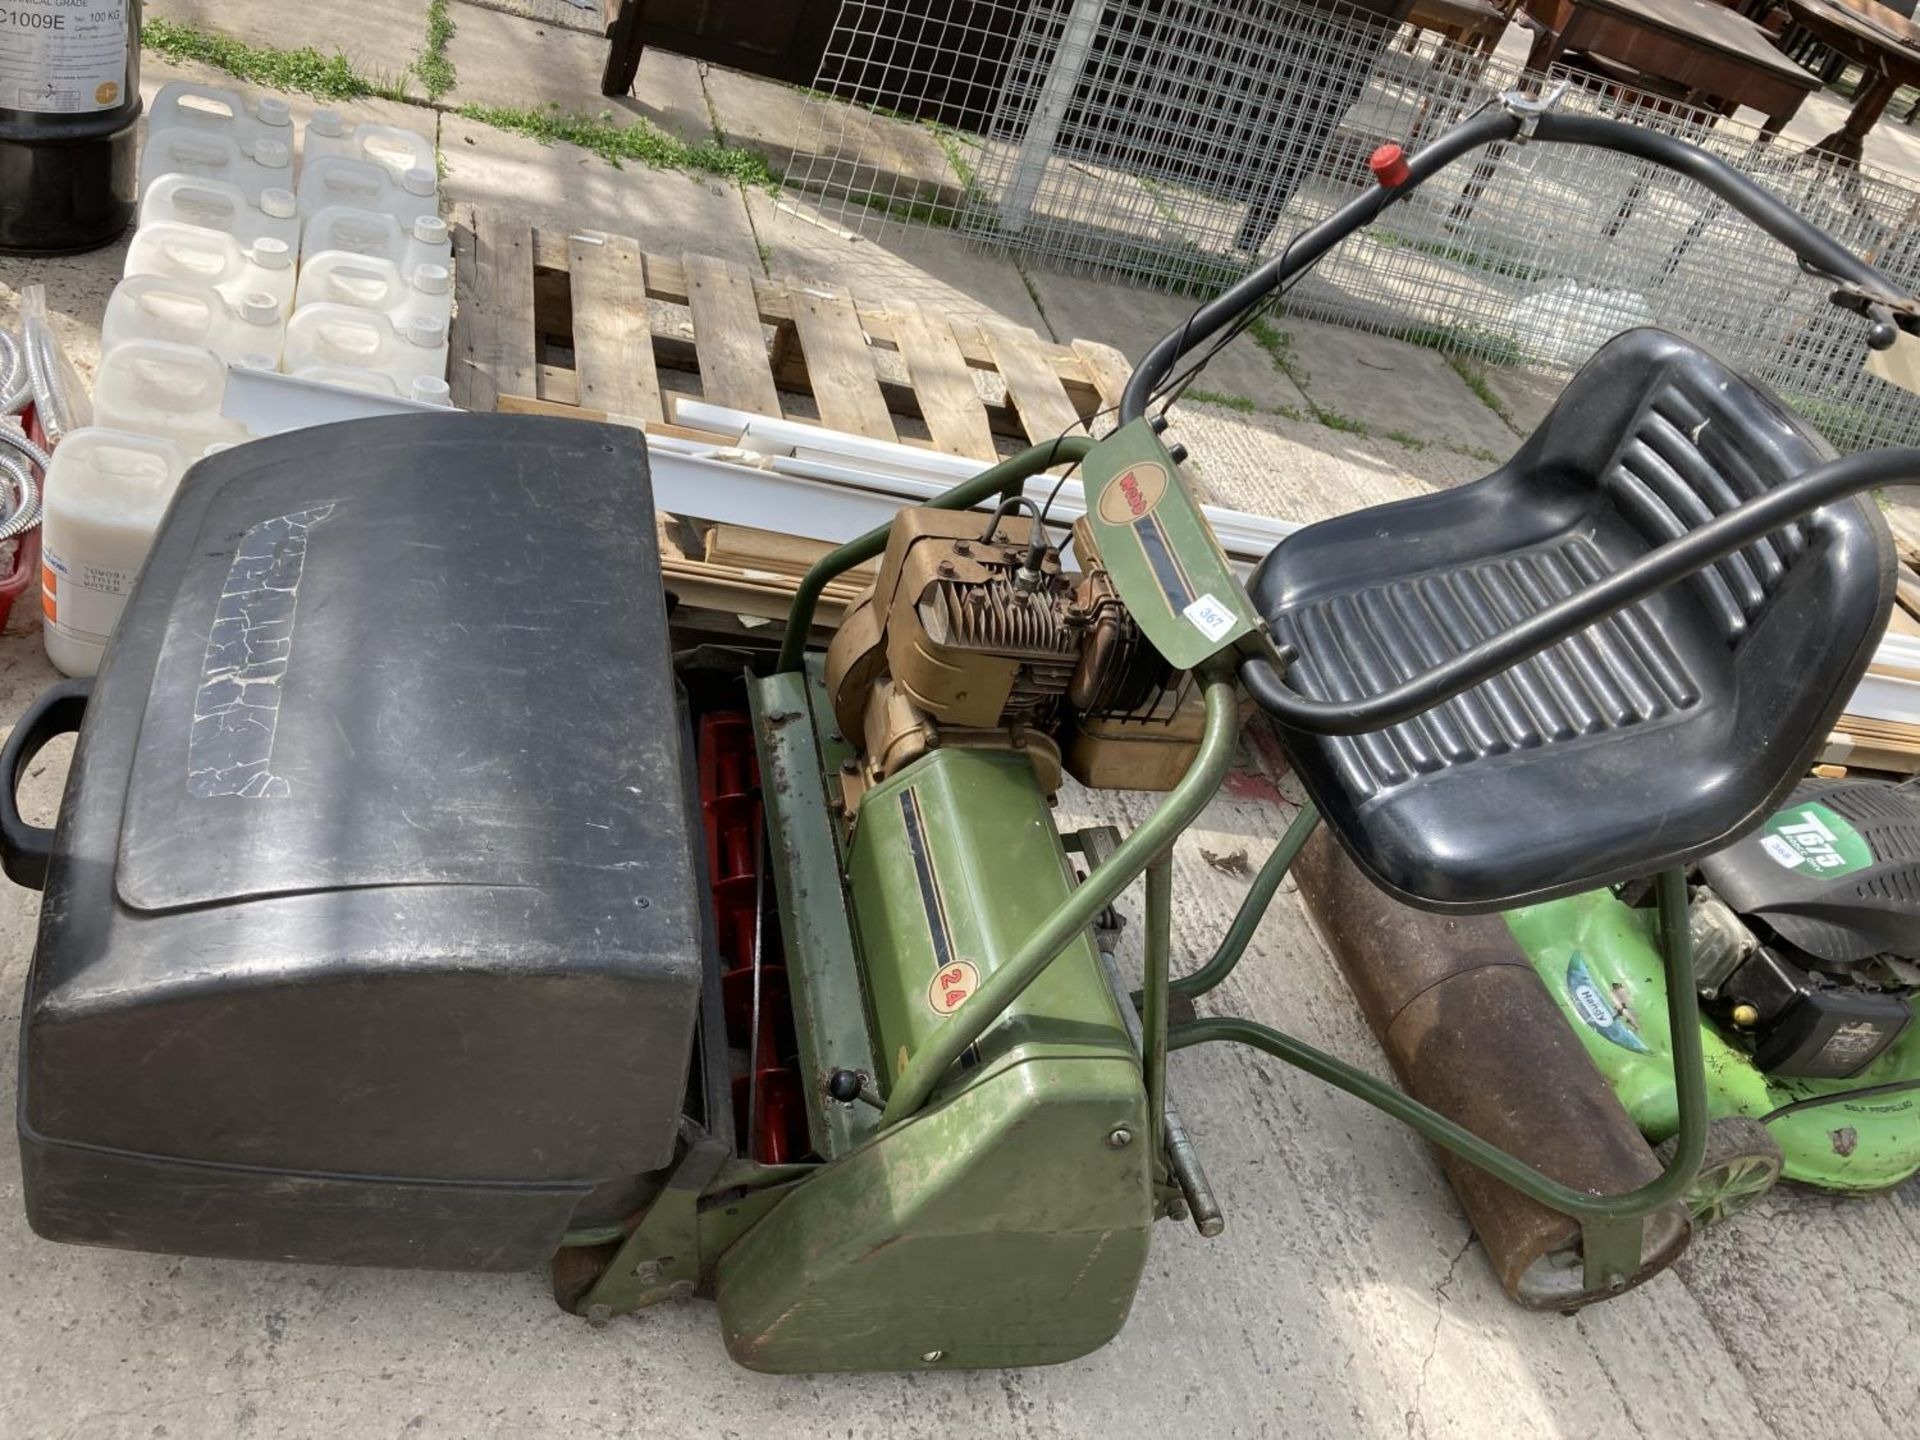 A WEBB 24 INCH CYLINDER ROLLER LAWN MOWER WITH GRASS BOX, RIDE ON ROLLER SEAT (THIS MOWER HAS BEEN